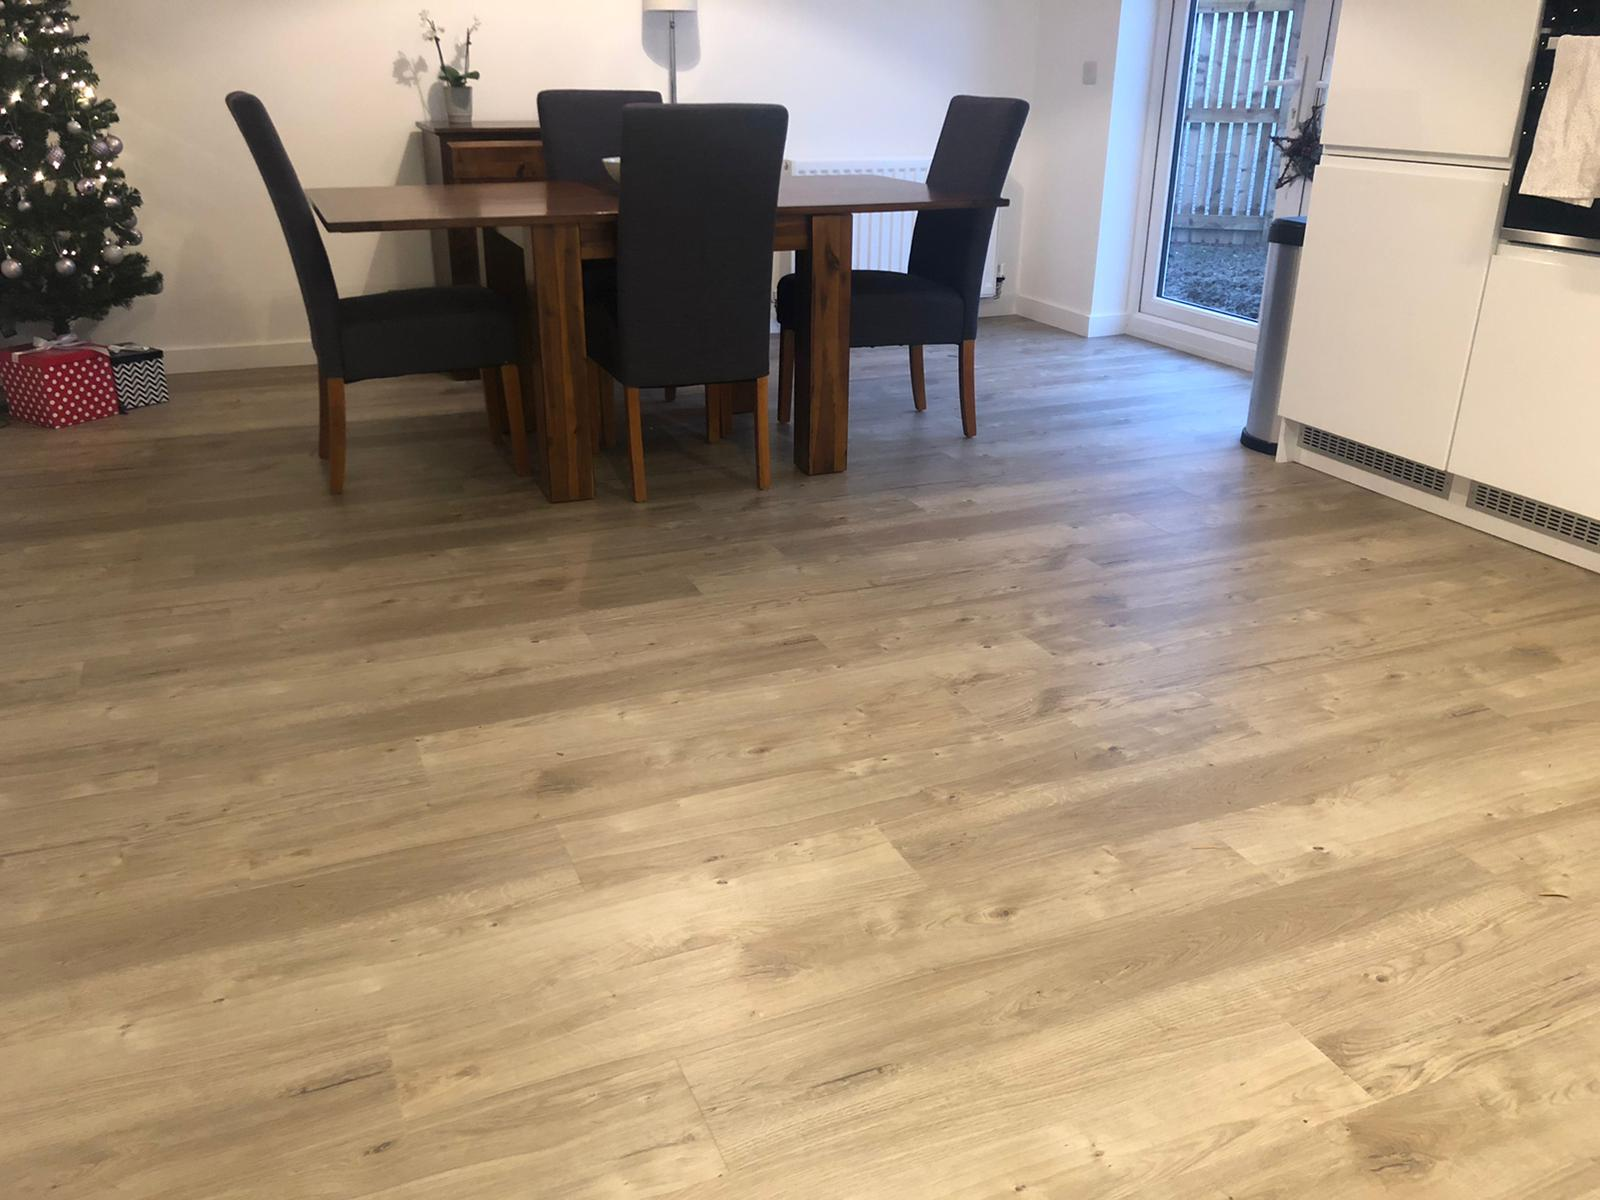 Luxury vinyl tile flooring that looks like wood.